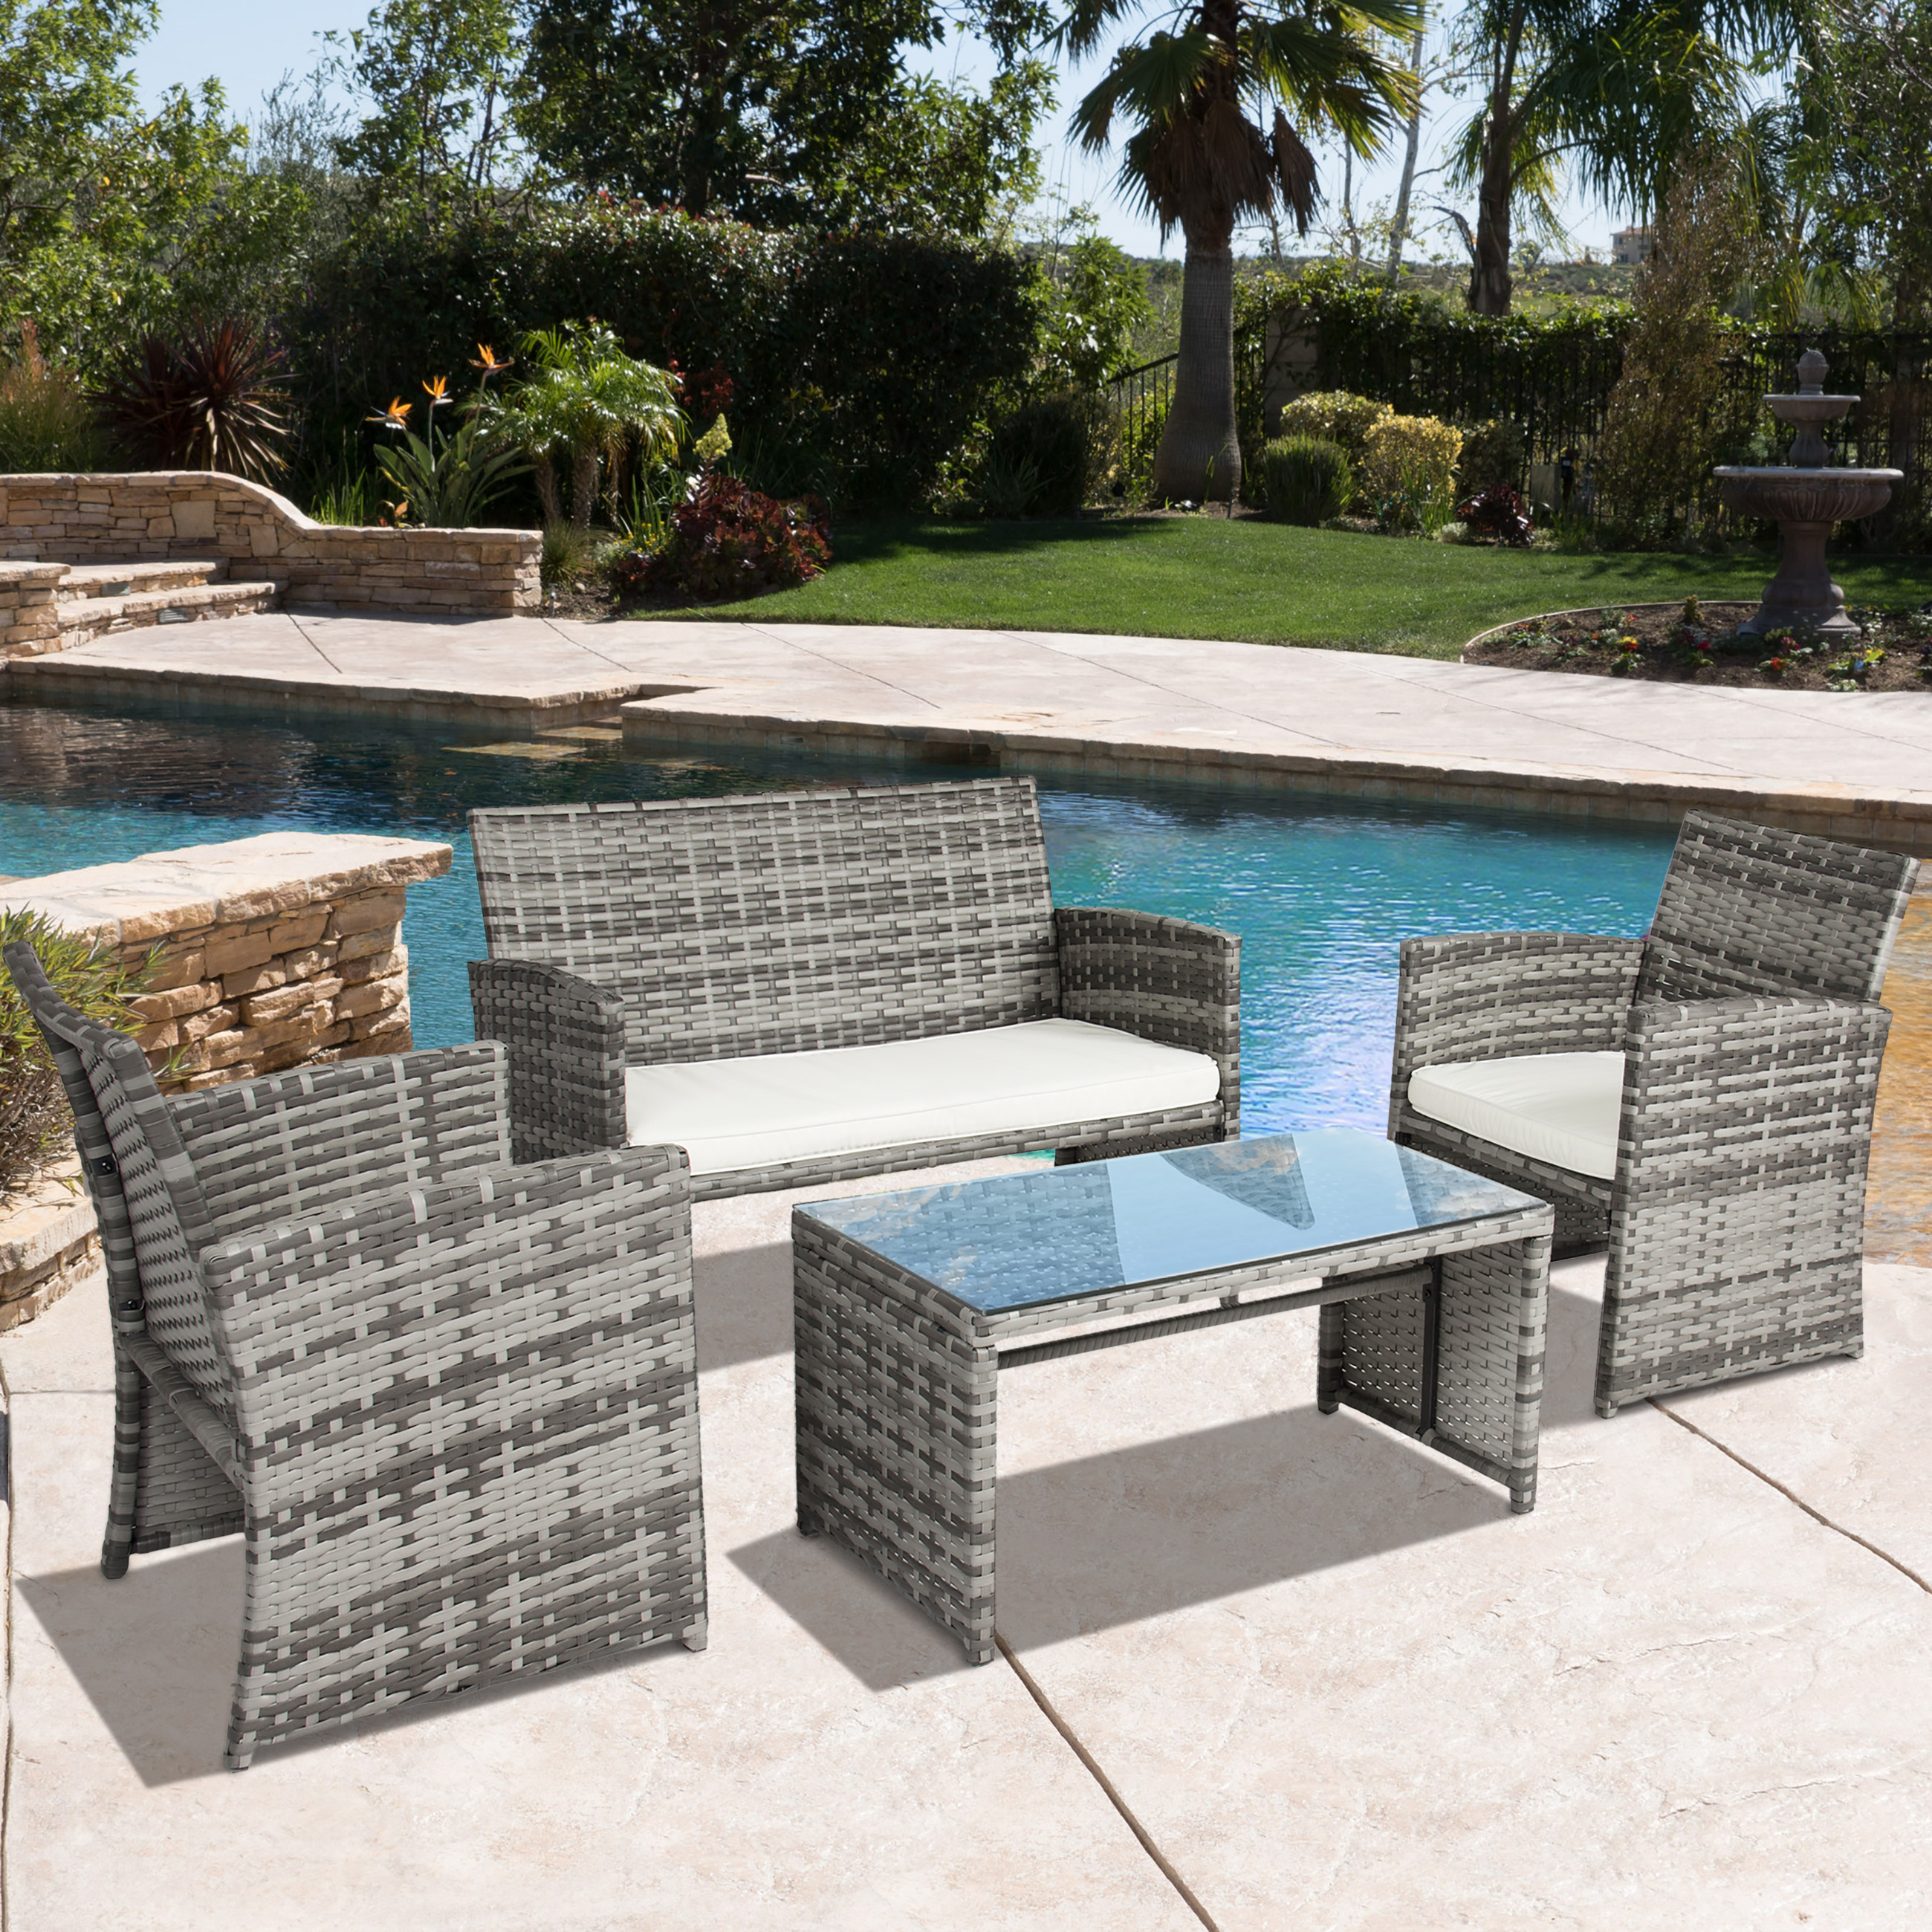 best choice products outdoor patio furniture cushioned 4 piece wicker sofa coversation set gray